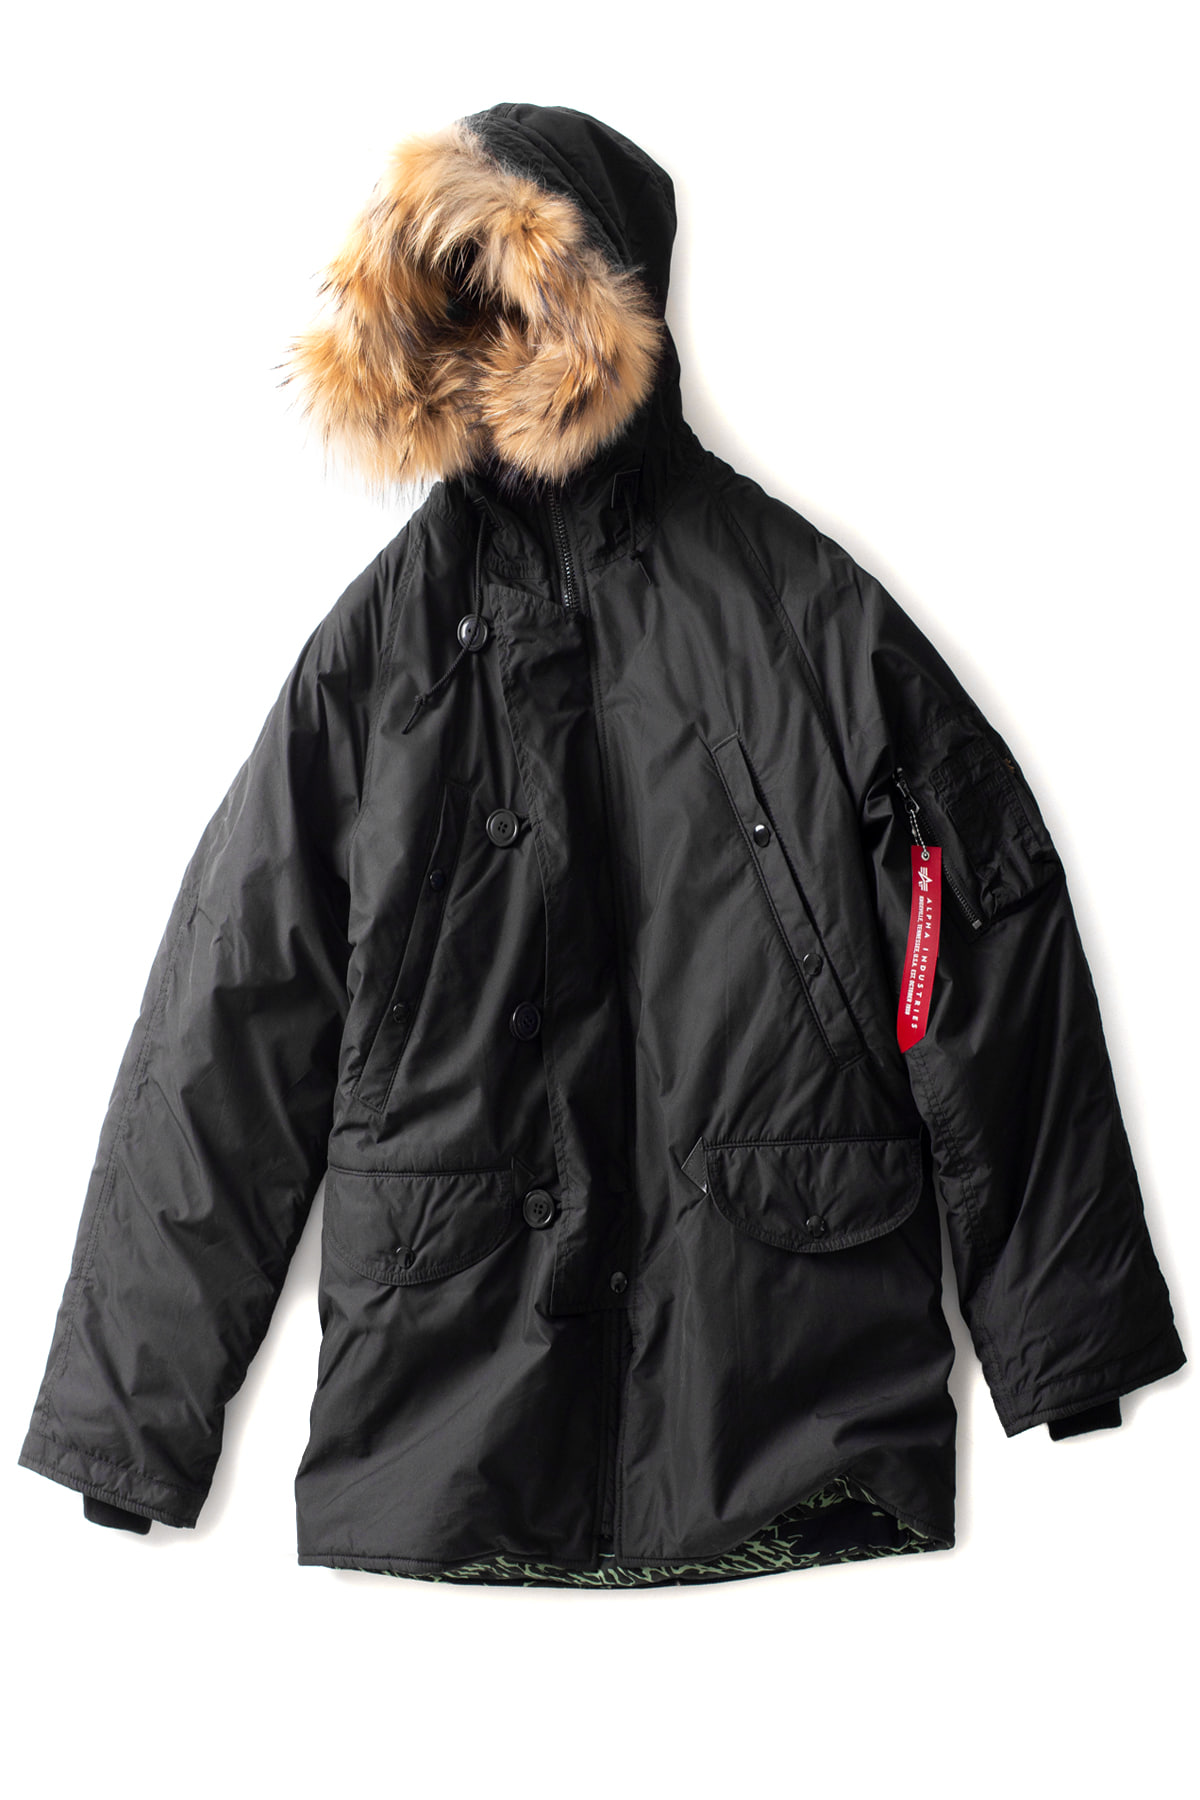 N.HOOLYWOOD x ALPHA INDUSTRIES : 982-CO01-064 (Black)